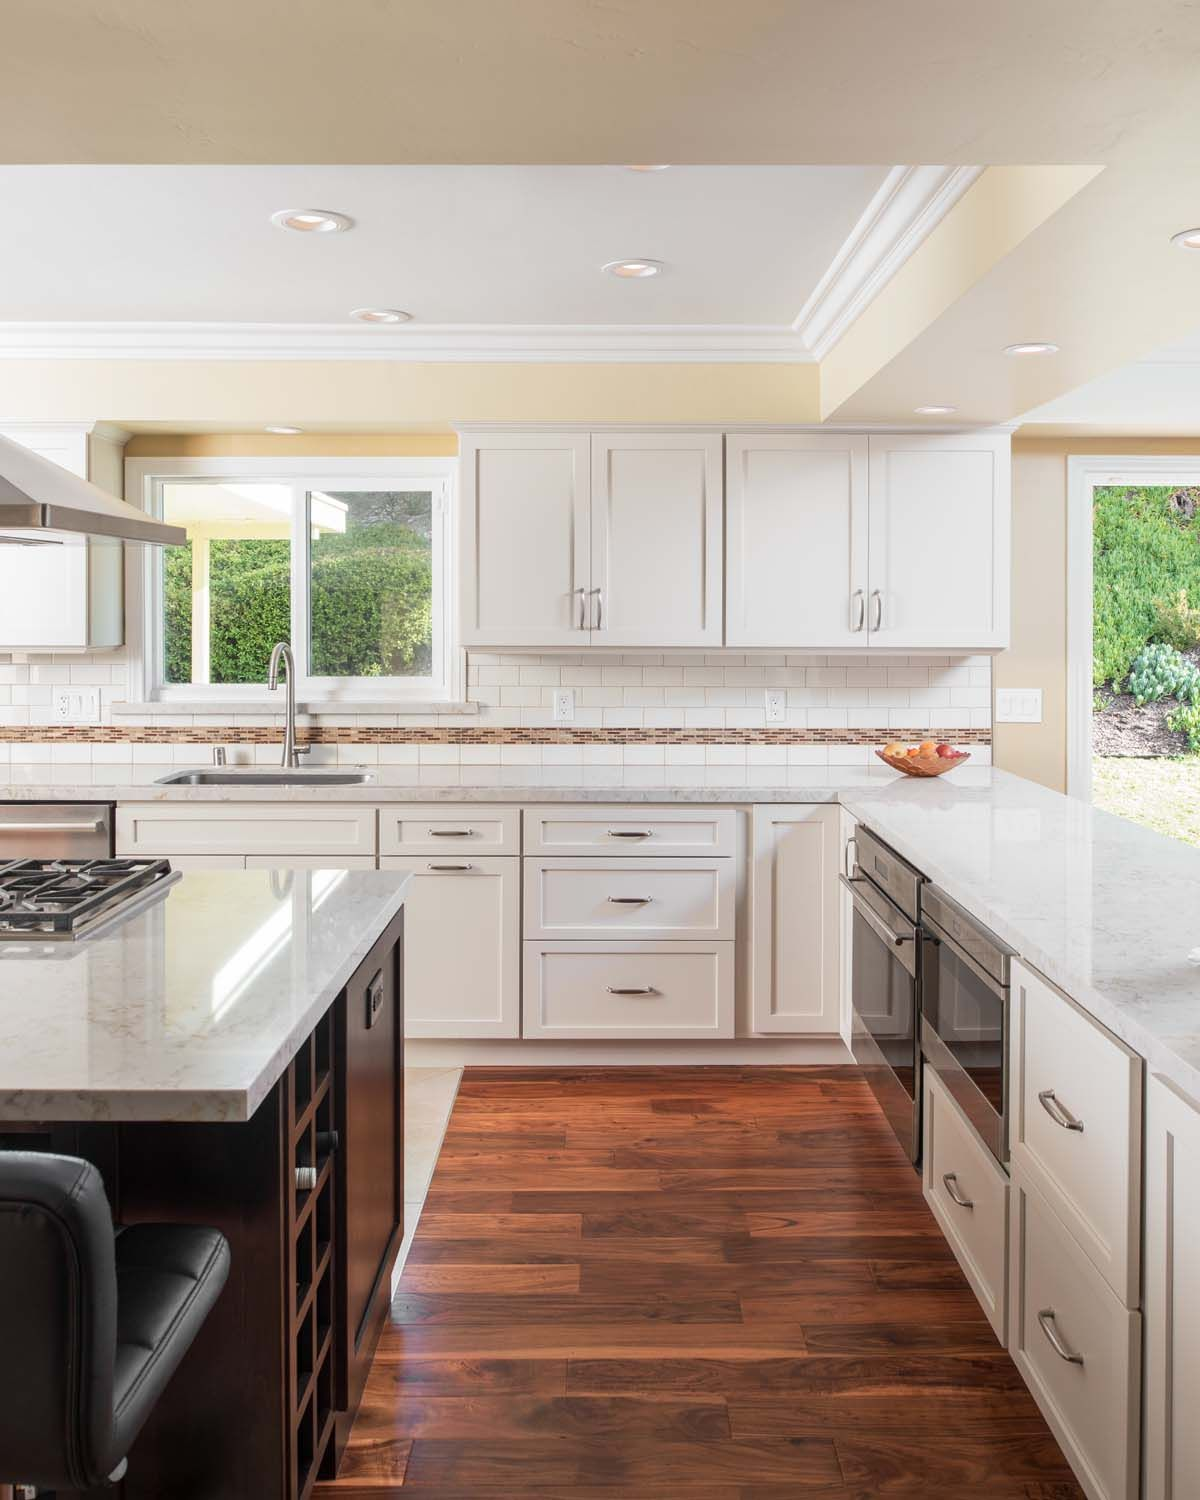 White Shaker Cabinets Espresso Island With Microwave In